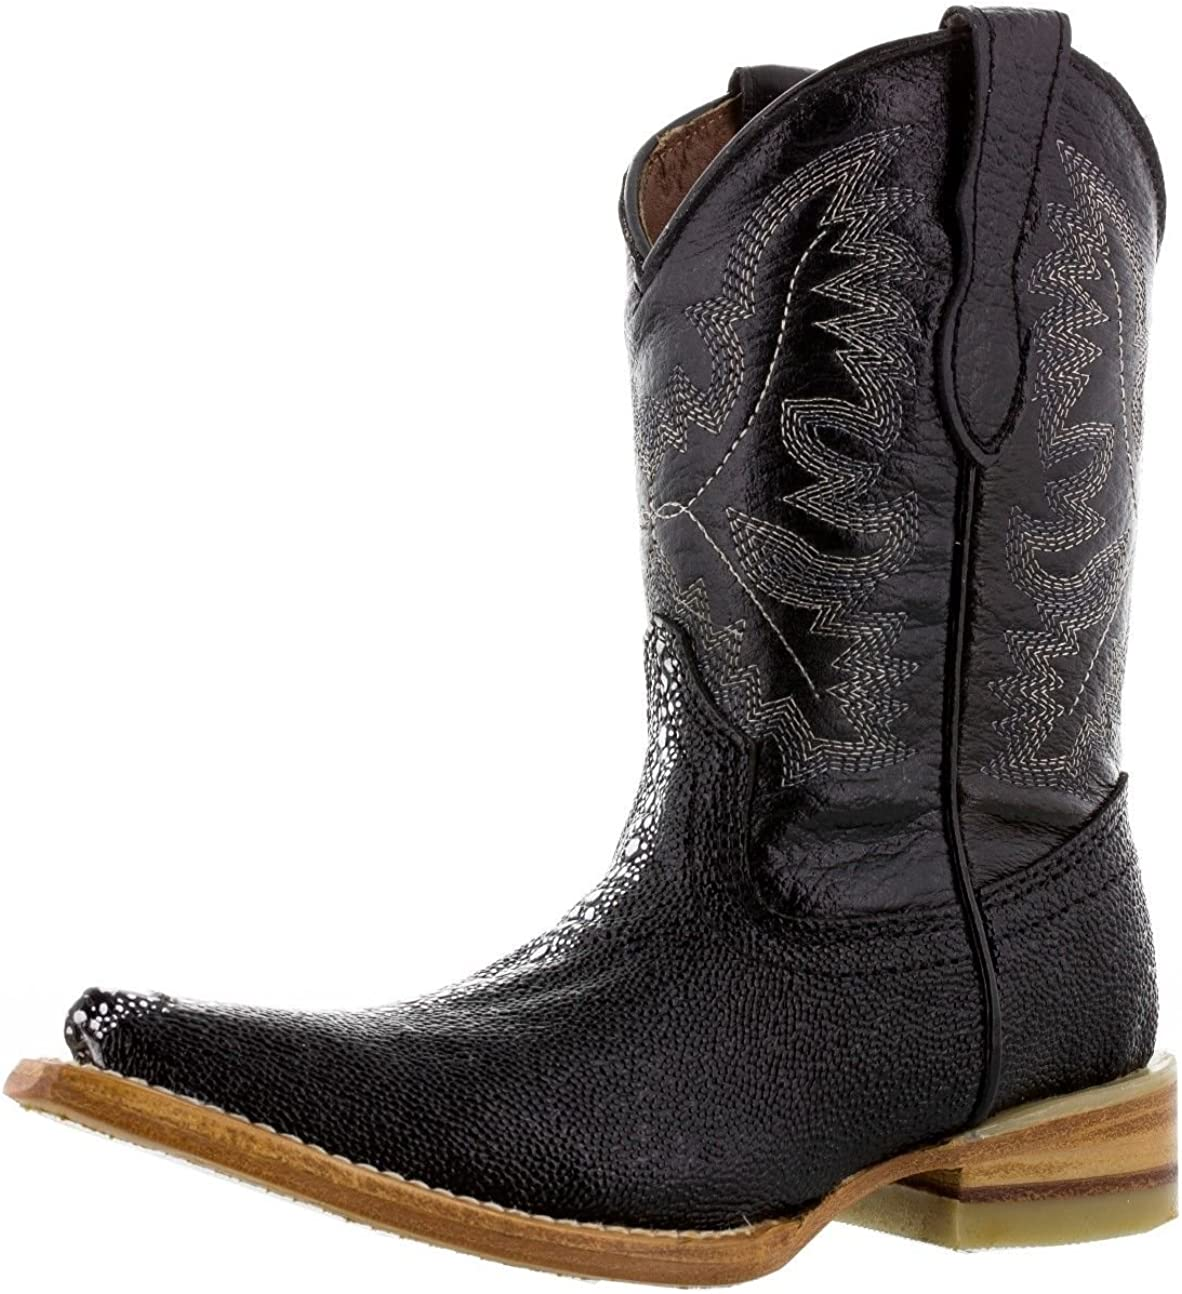 ids Boys New Leather Stingray Design Cowboy Western Durable Boots Black